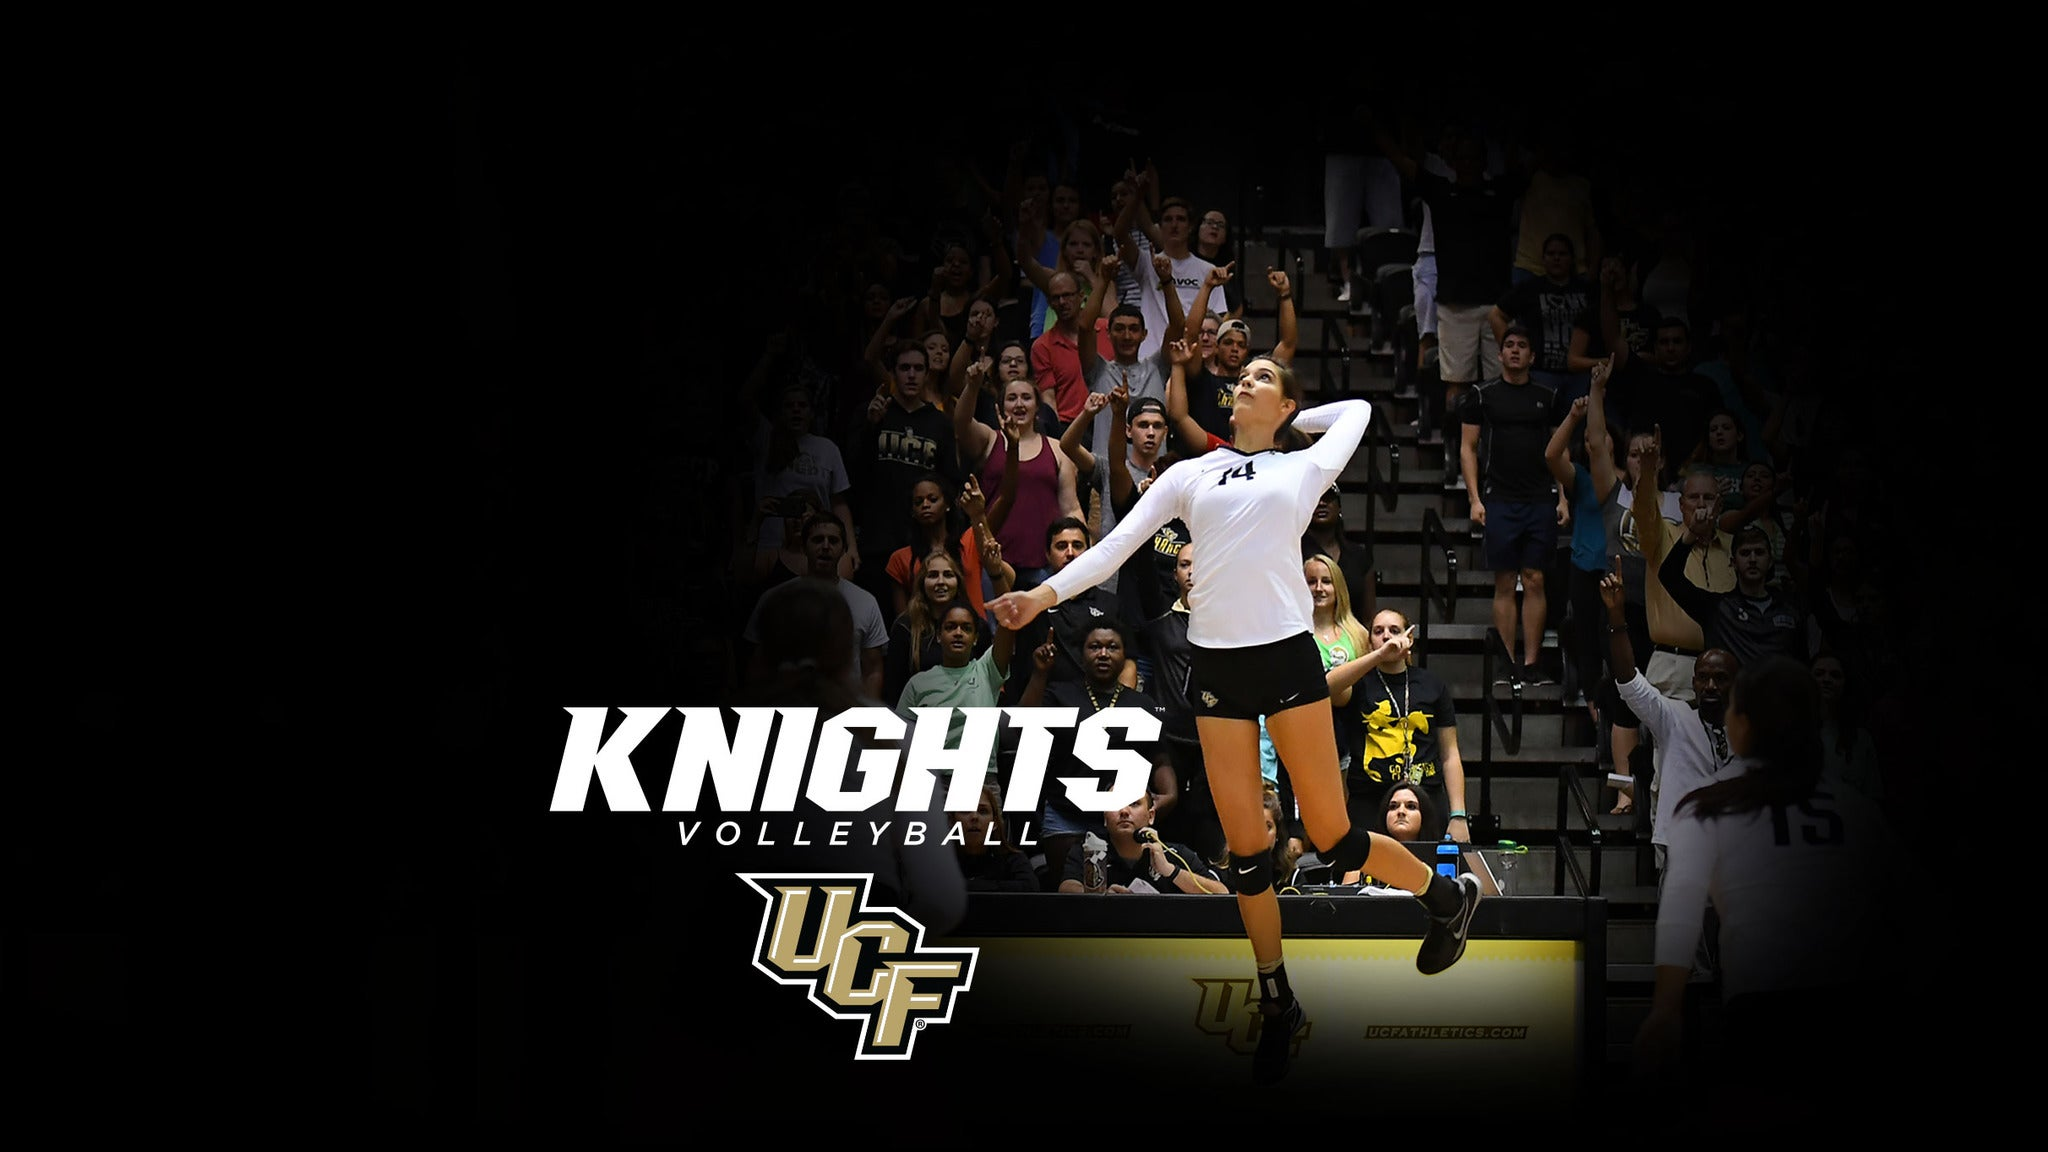 UCF Knights Volleyball vs. USF Volleyball